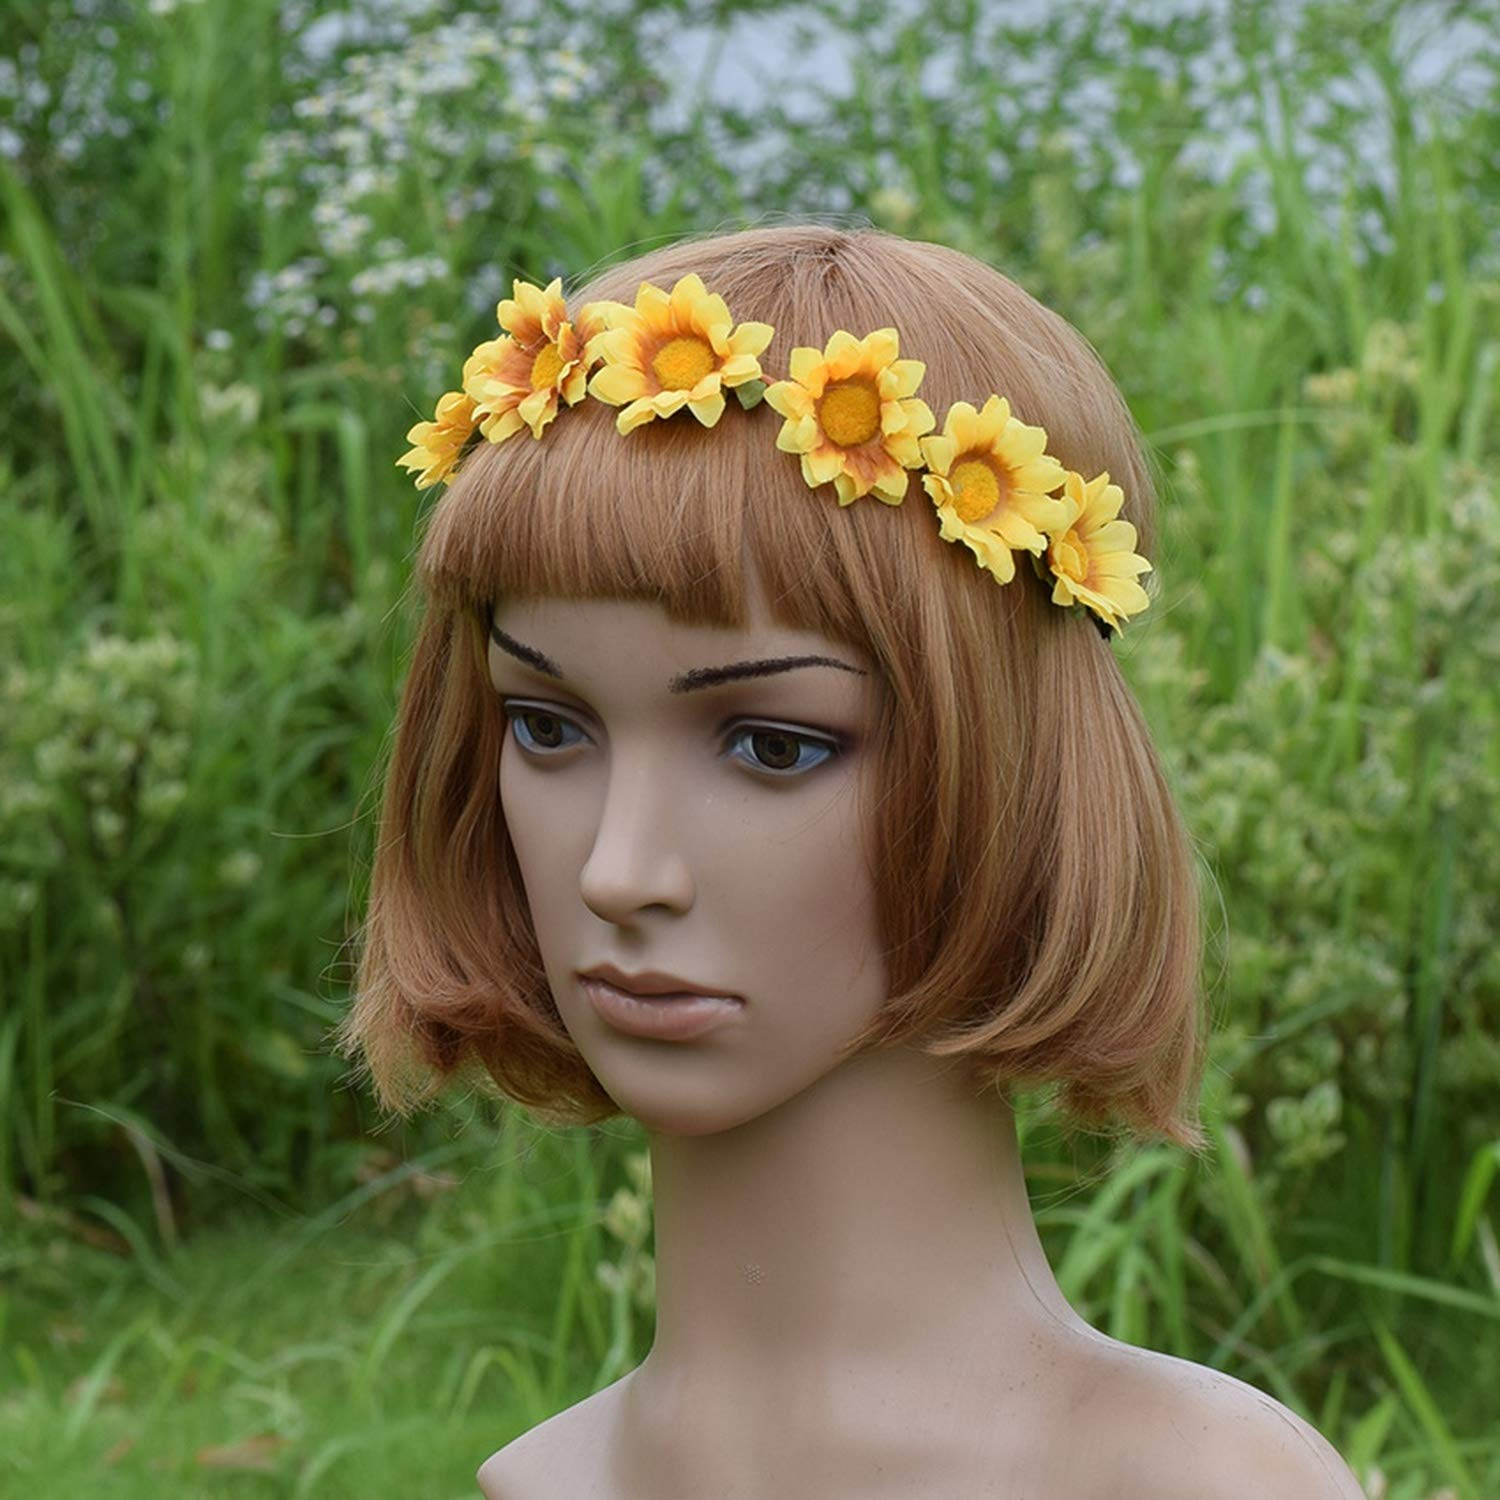 Poooyun-Life Sunflower Flower Crown Wreath Headband Bridesmaid Elastic Floral Crown Girl Women Wedding Headband Hair accessories,1